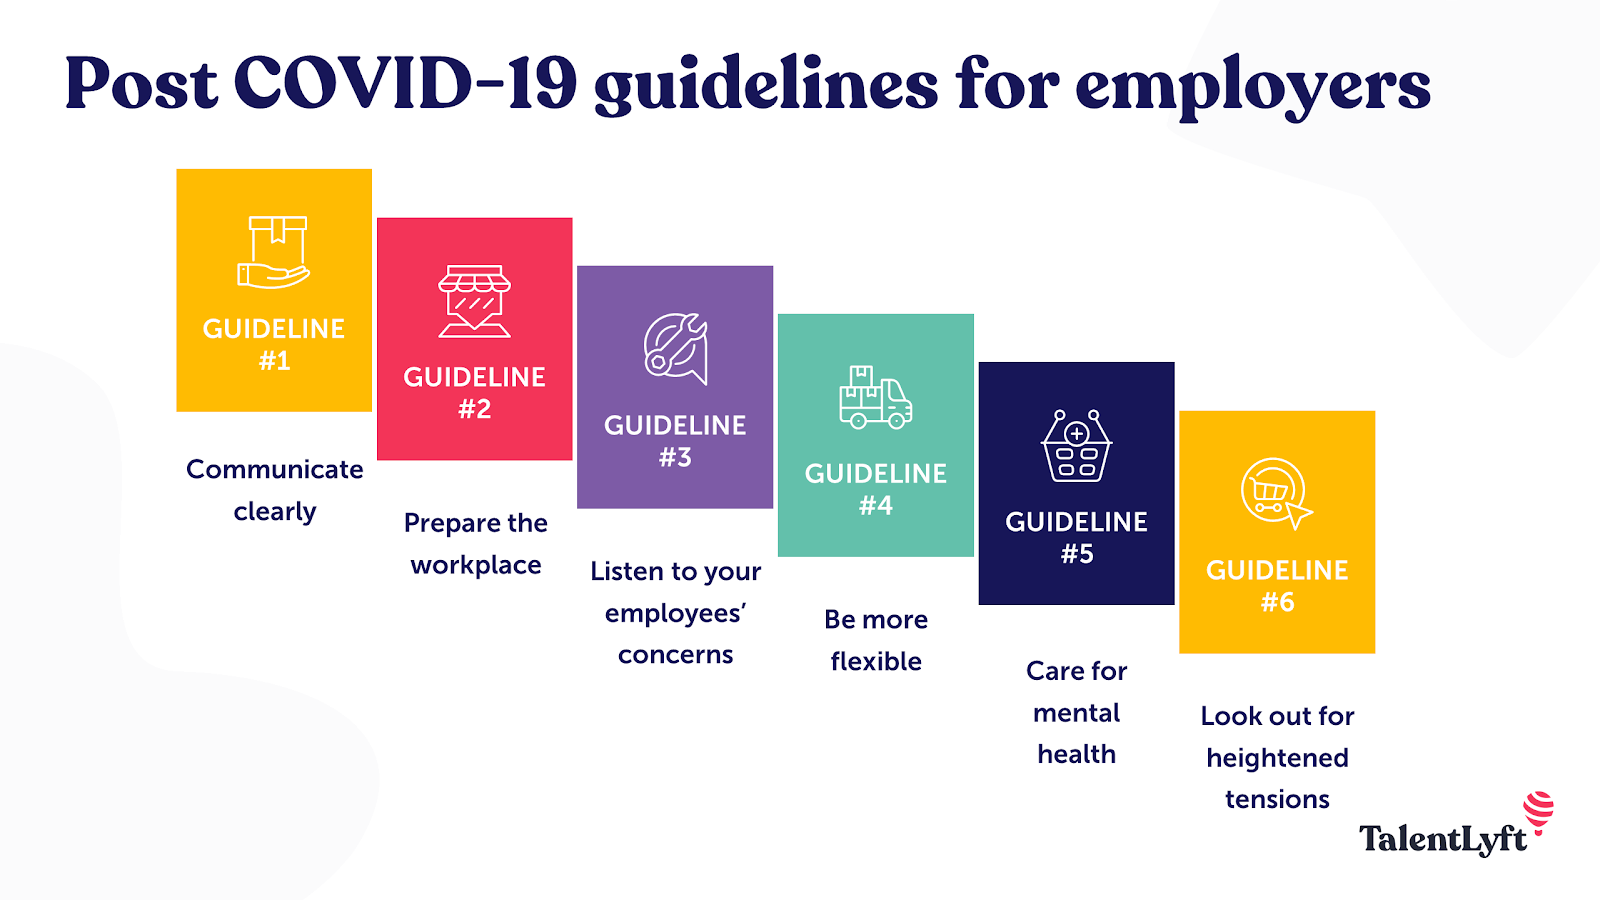 Return to work guidelines for employers